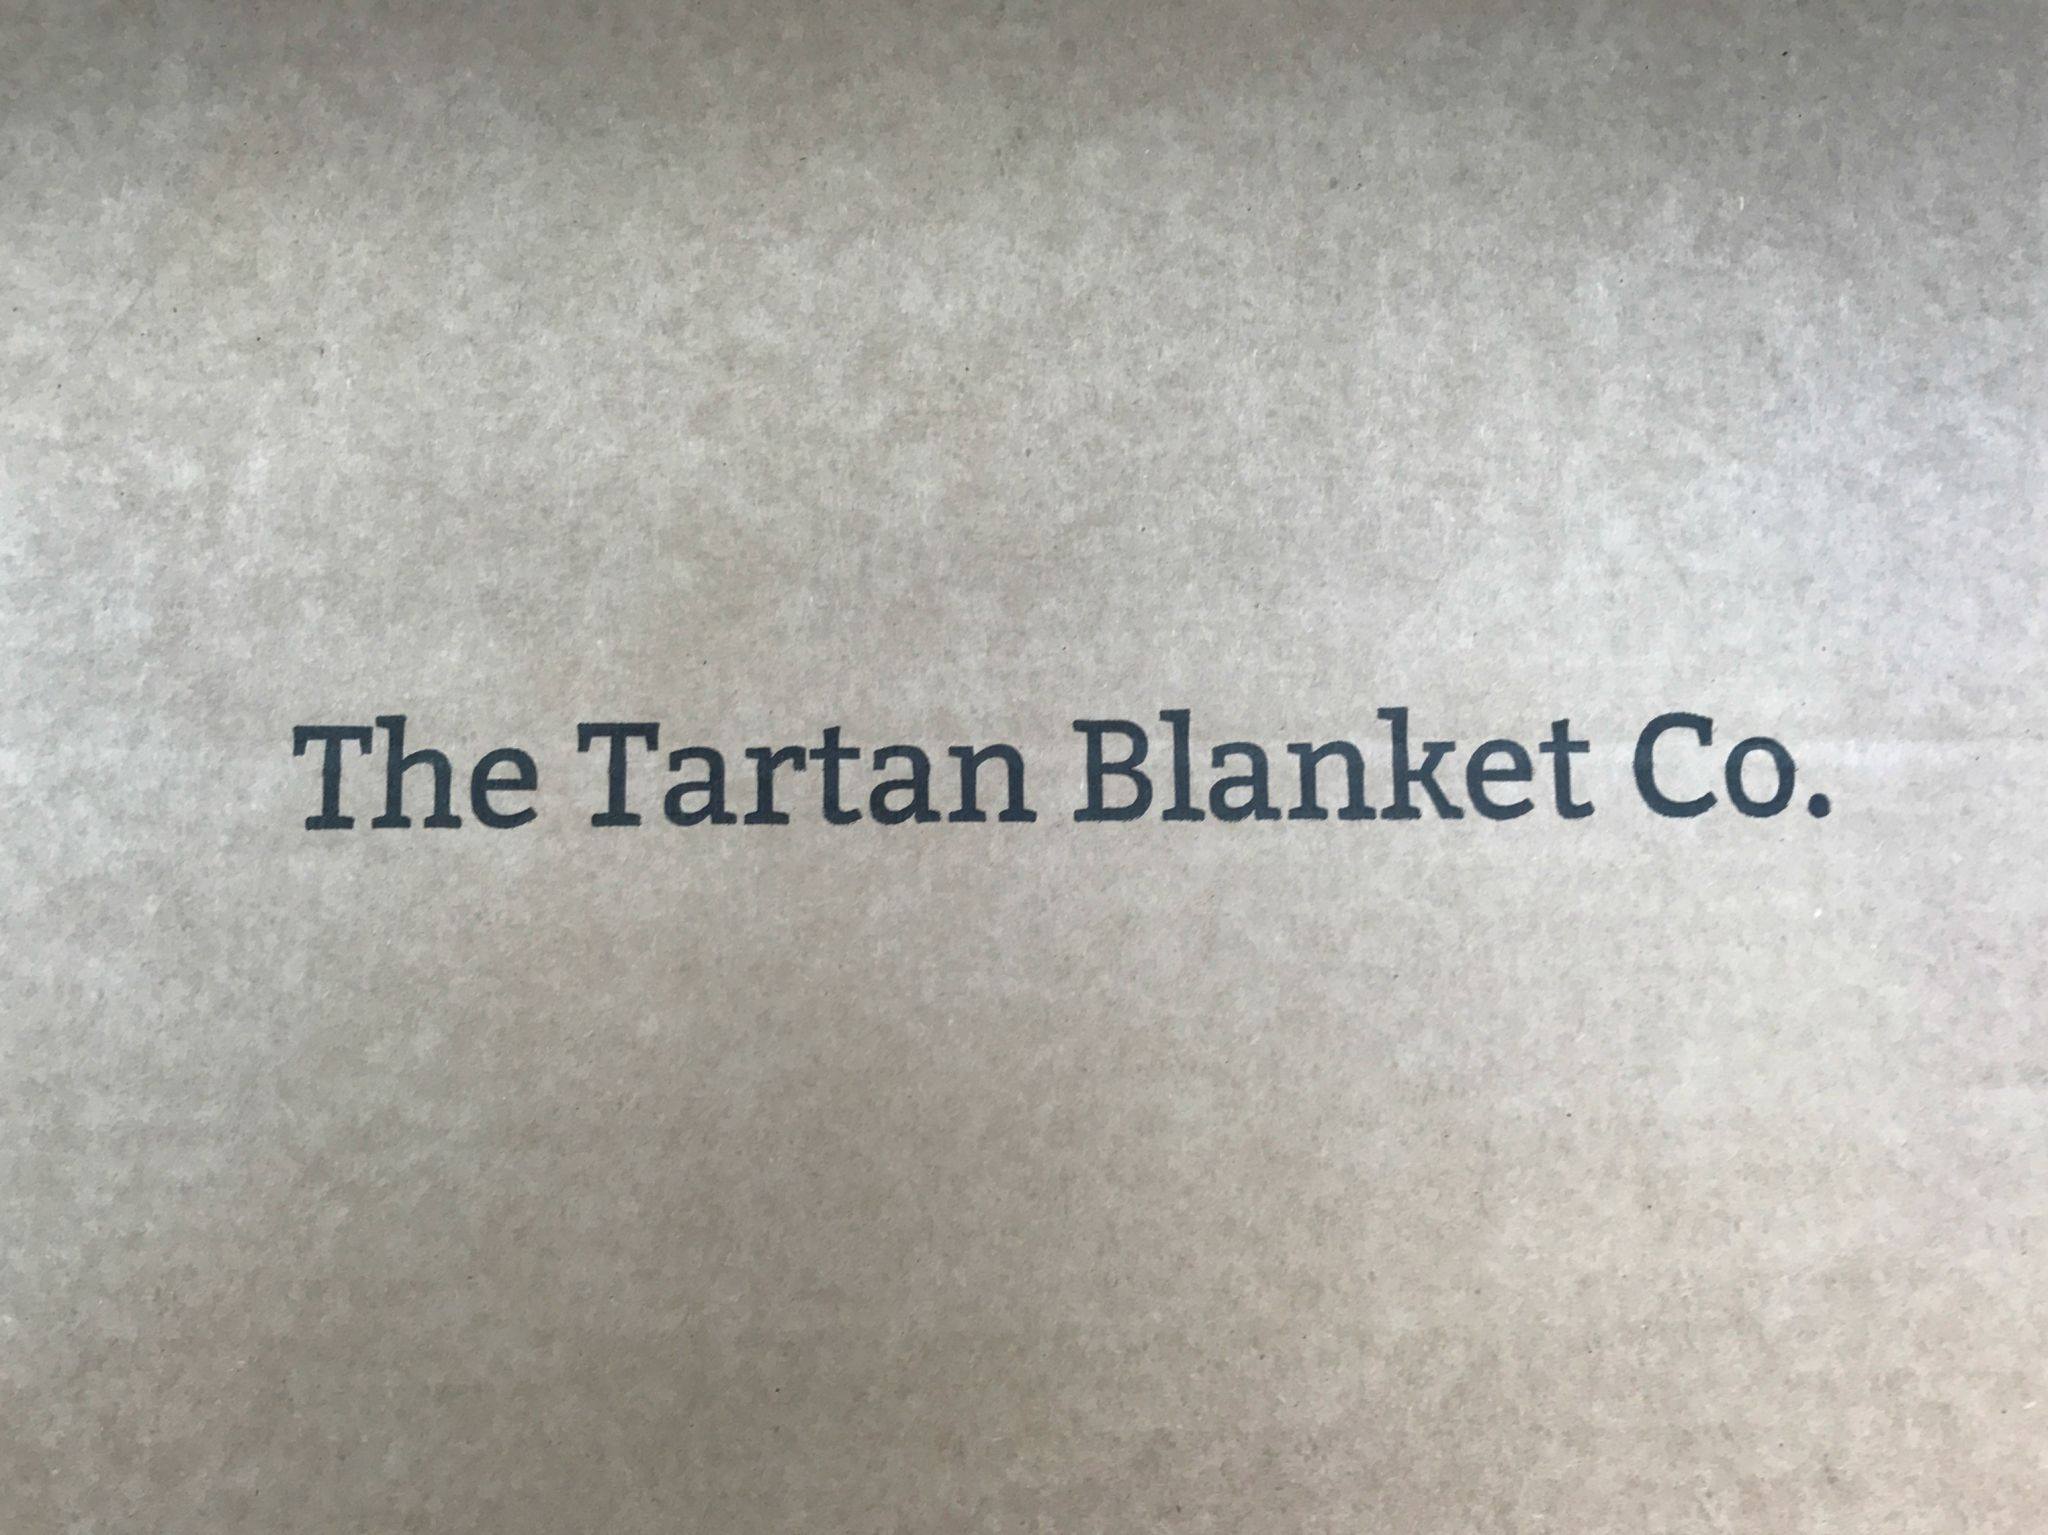 The Tartan Blanket Co. Box